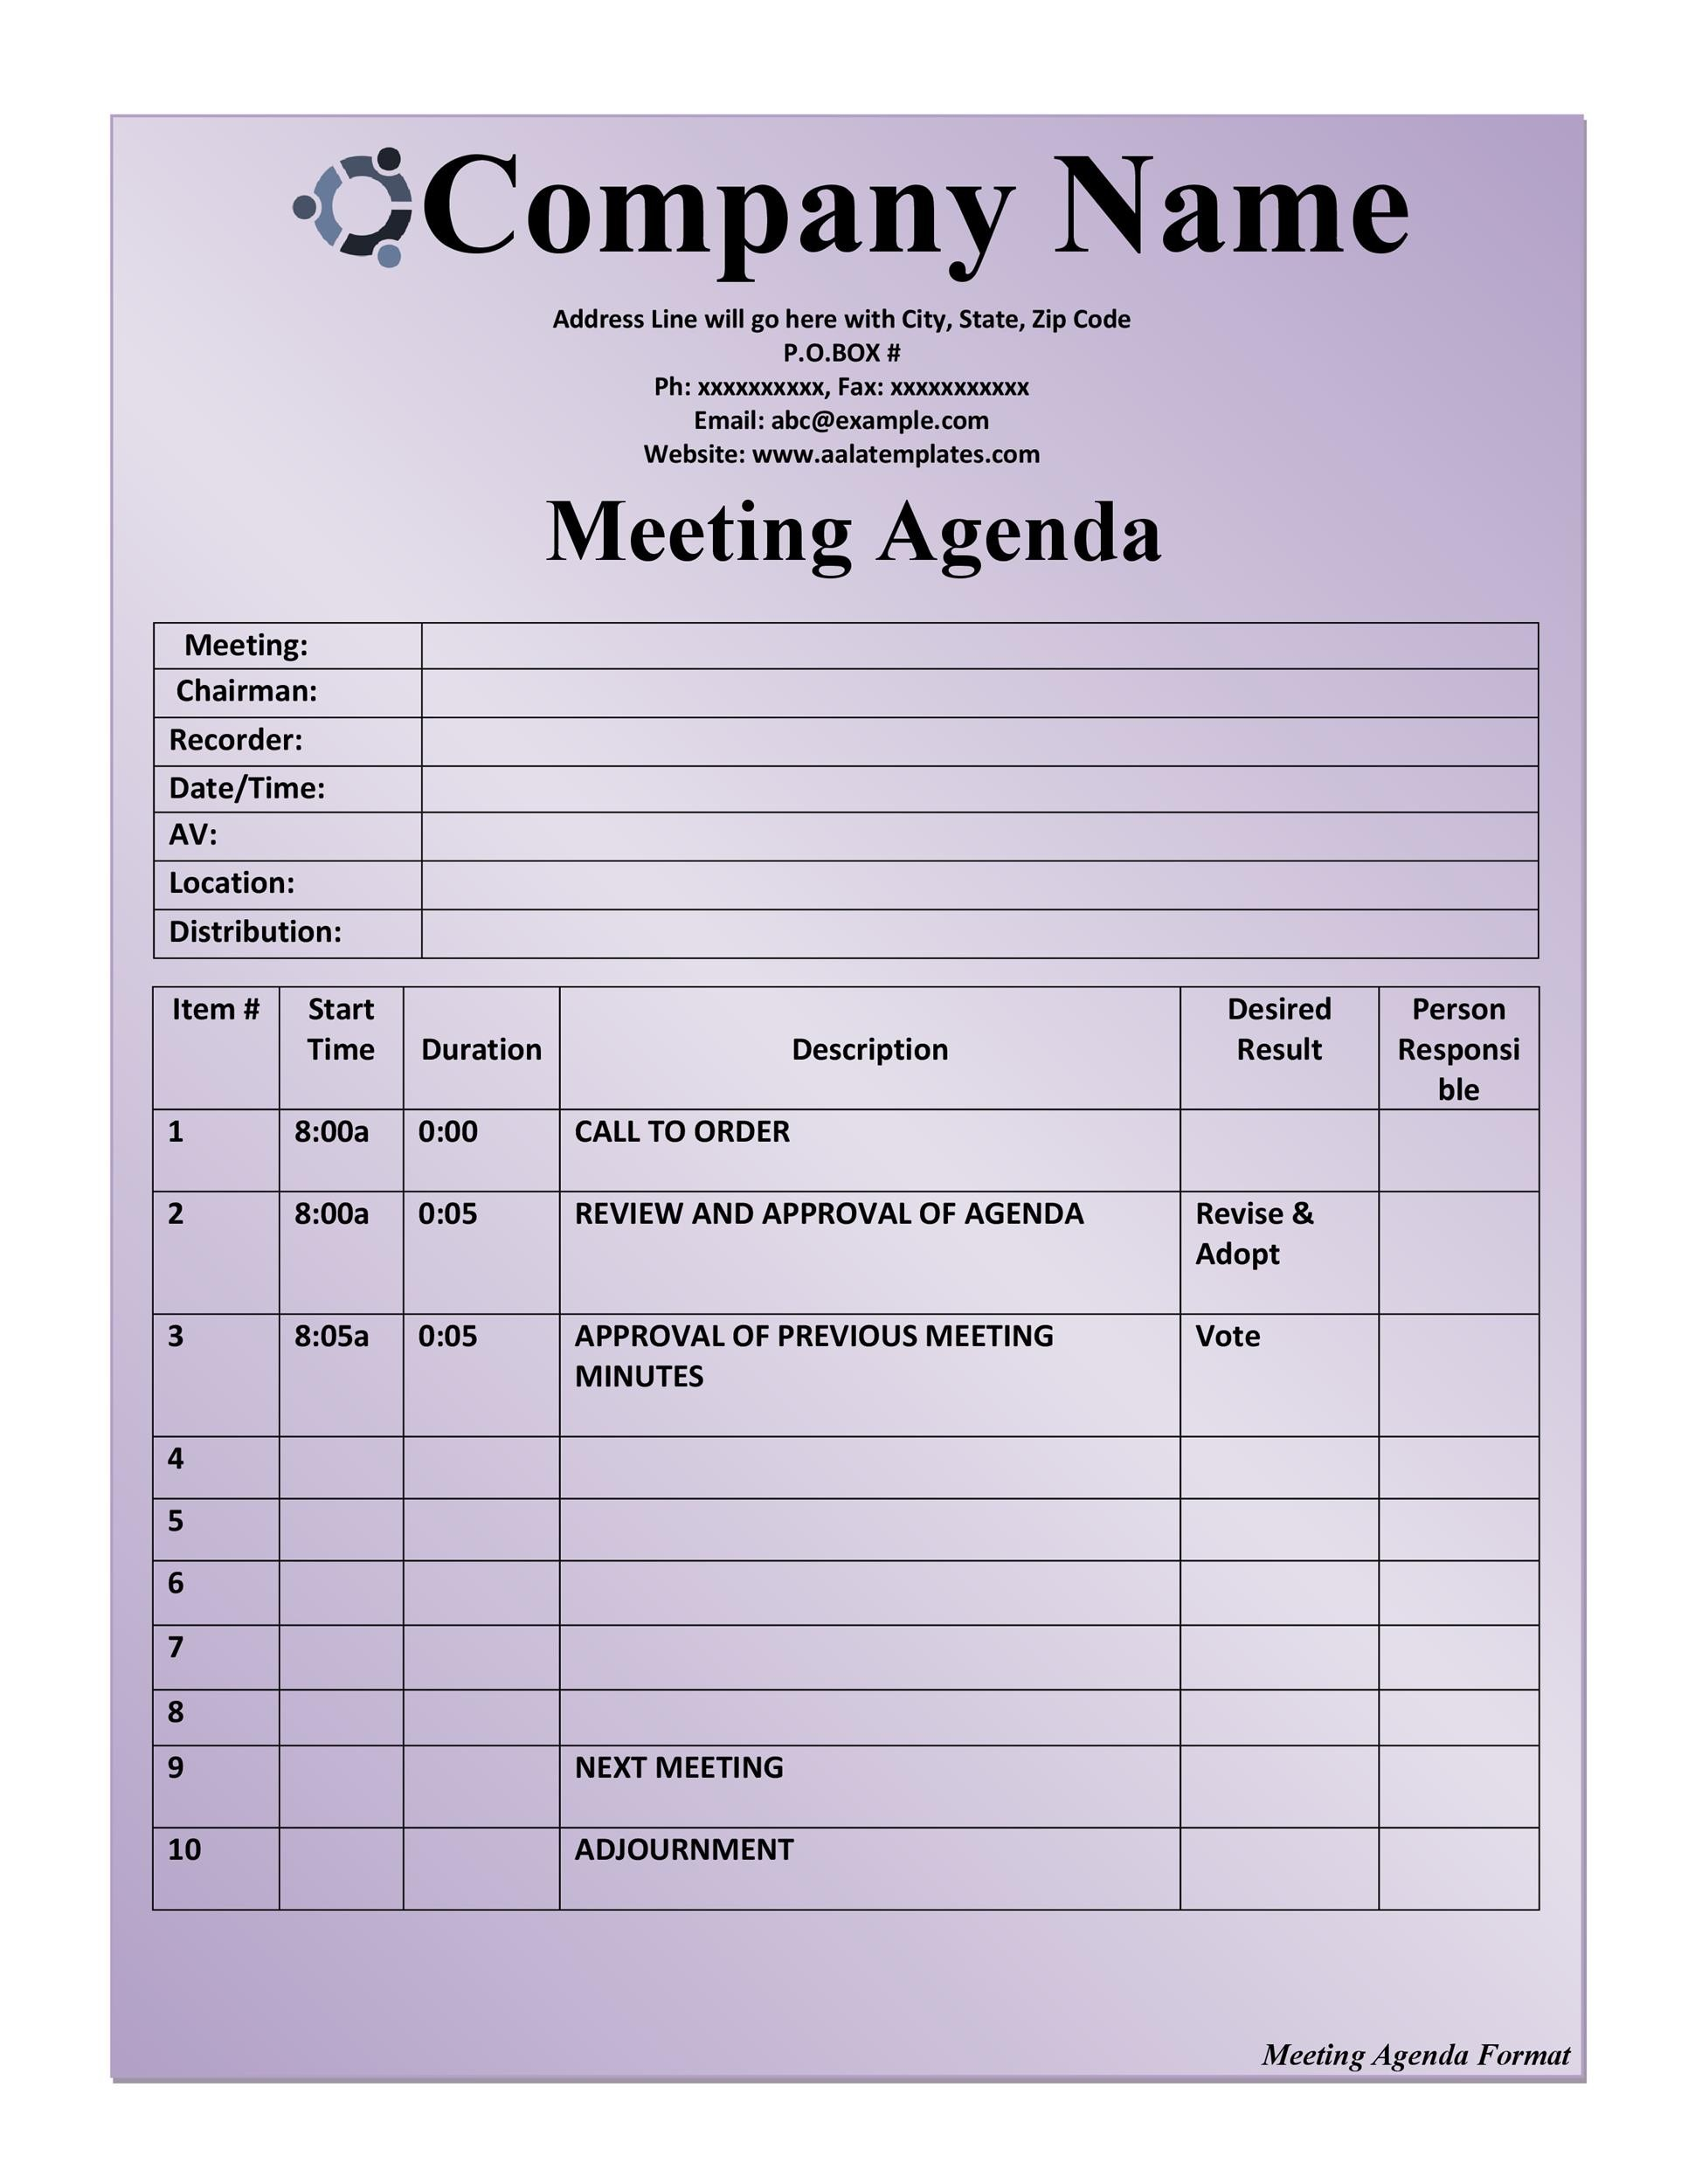 46 Effective Meeting Agenda Templates Template Lab – Meeting Agenda Template Free